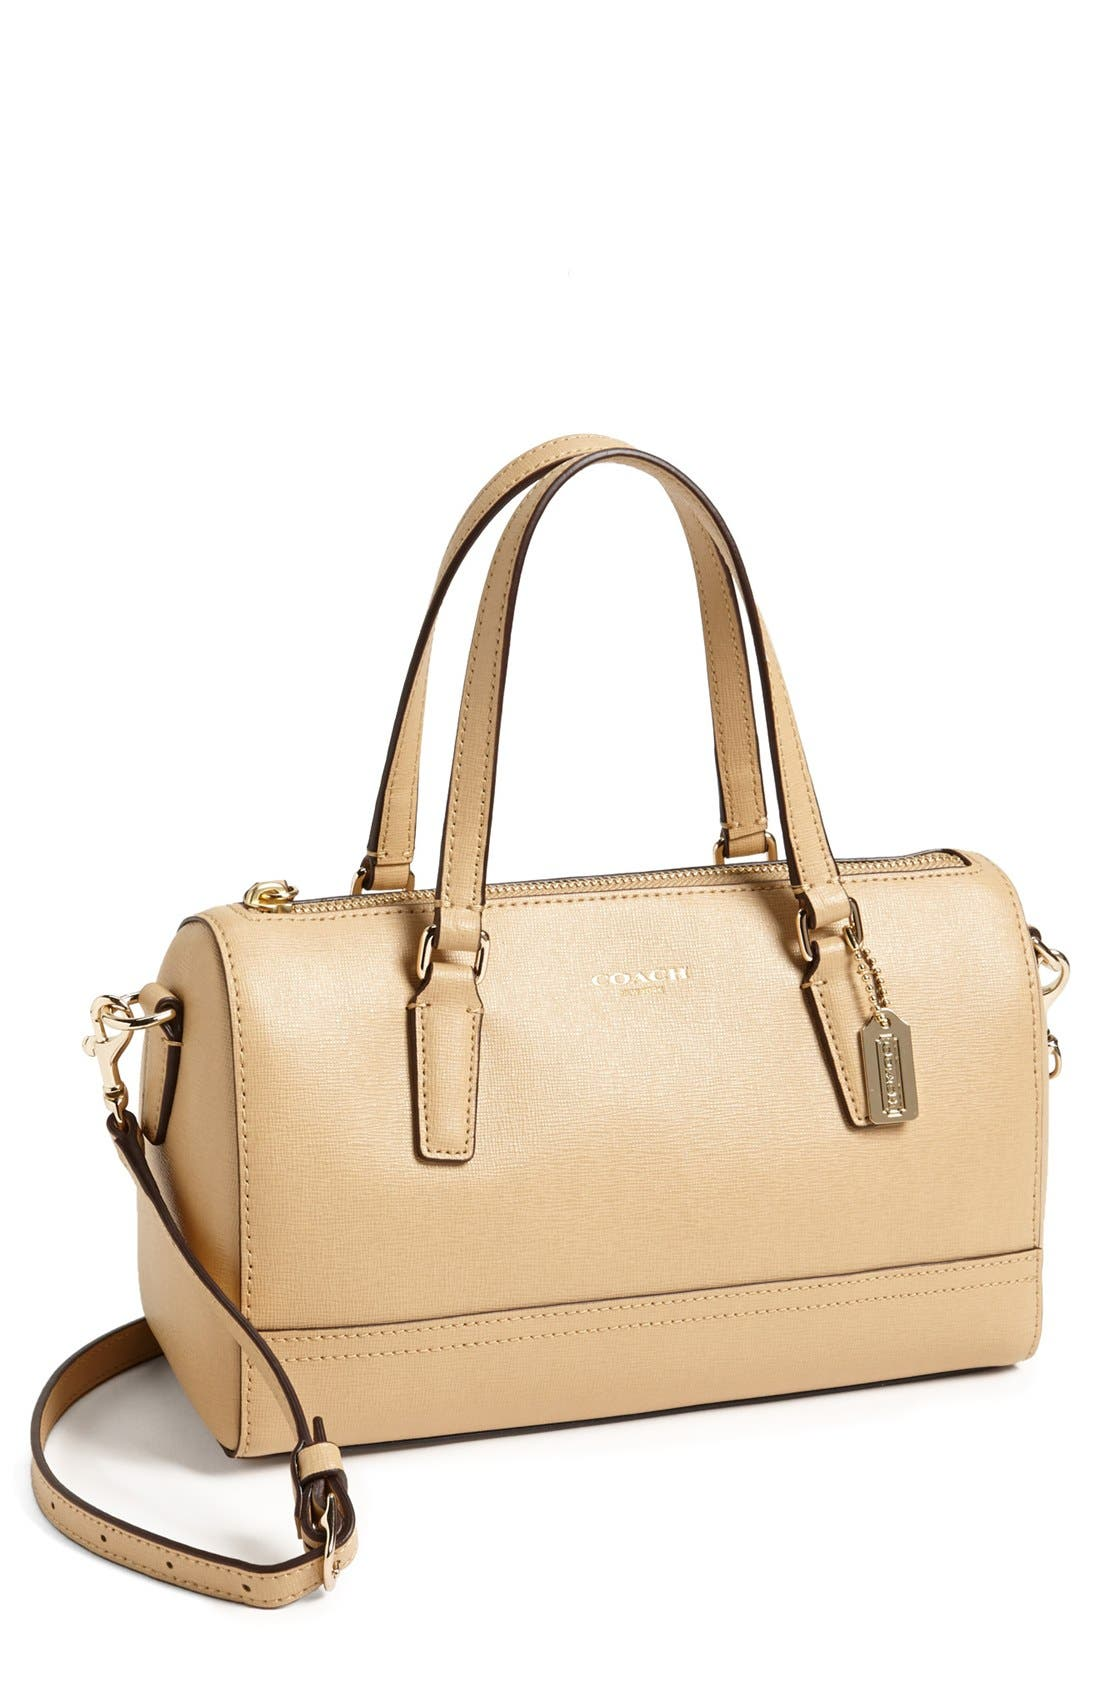 Alternate Image 1 Selected - COACH 'Mini' Saffiano Leather Satchel